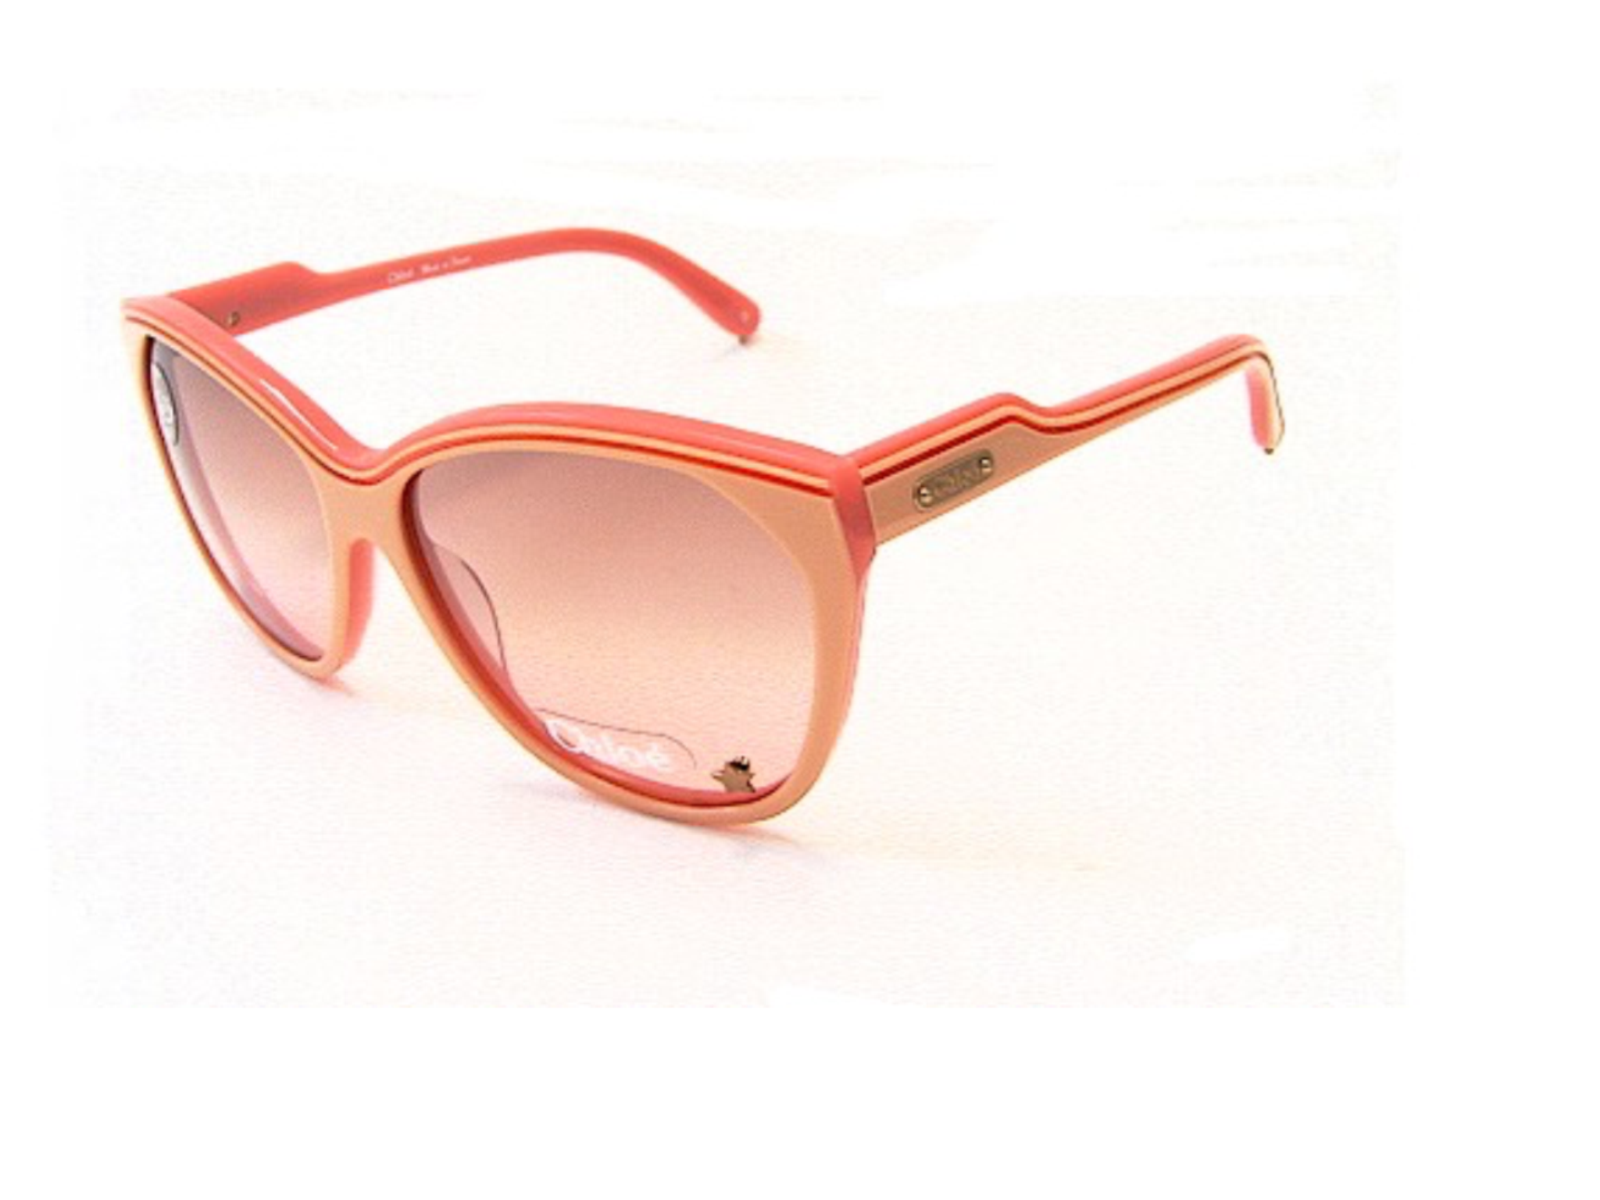 CHLOE Womens CL2181 Pink Plastic Sunglasses Gold Logo New in Case MADE IN FRANCE